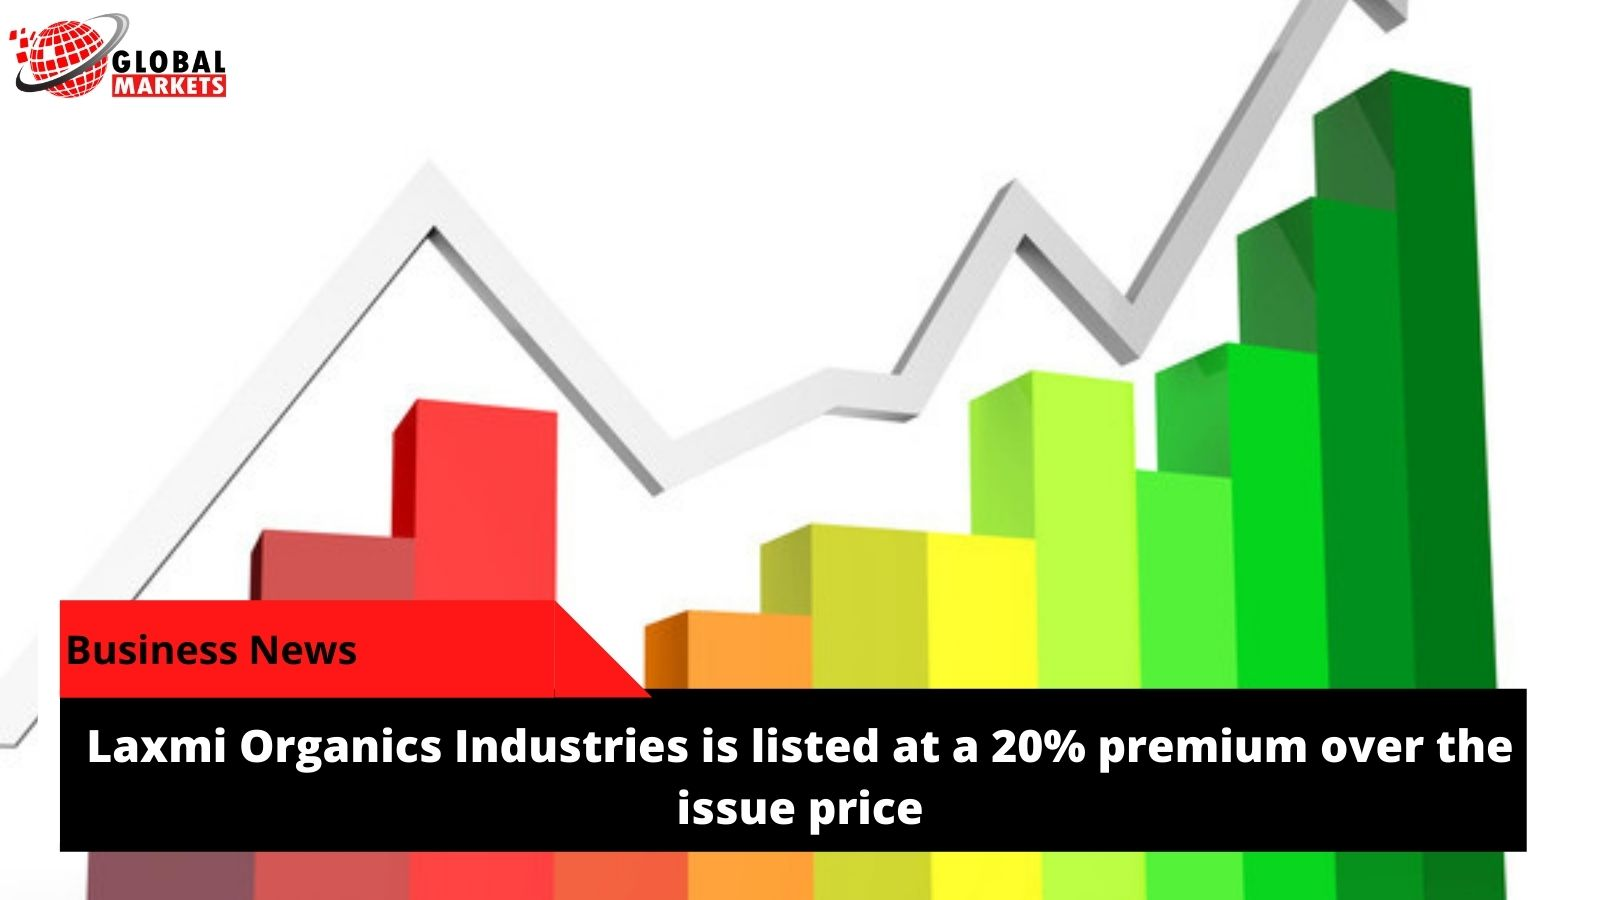 Laxmi Organics Industries is listed at a 20% premium over the issue price